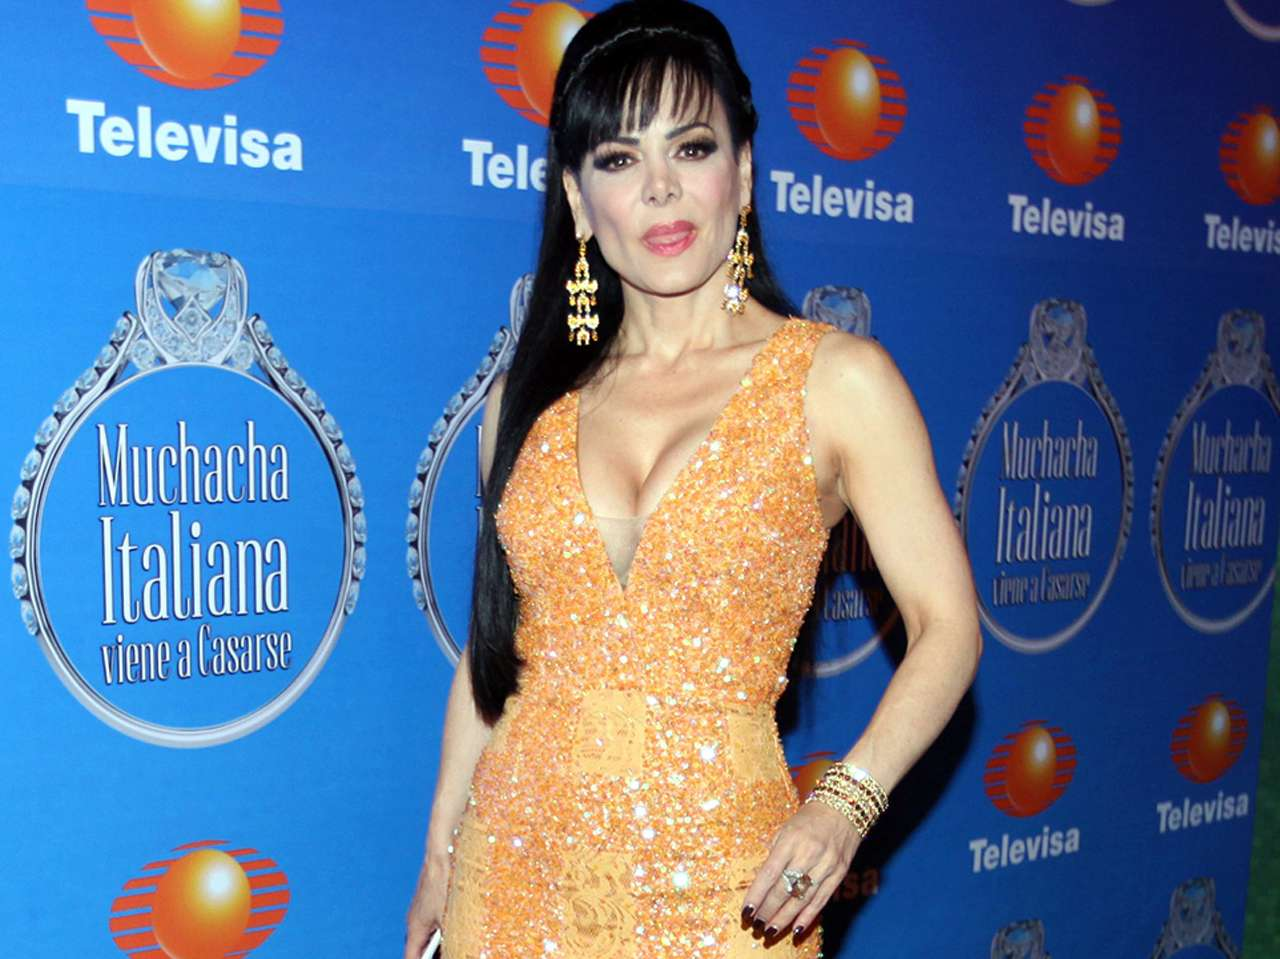 Maribel Guardia Foto: Reforma